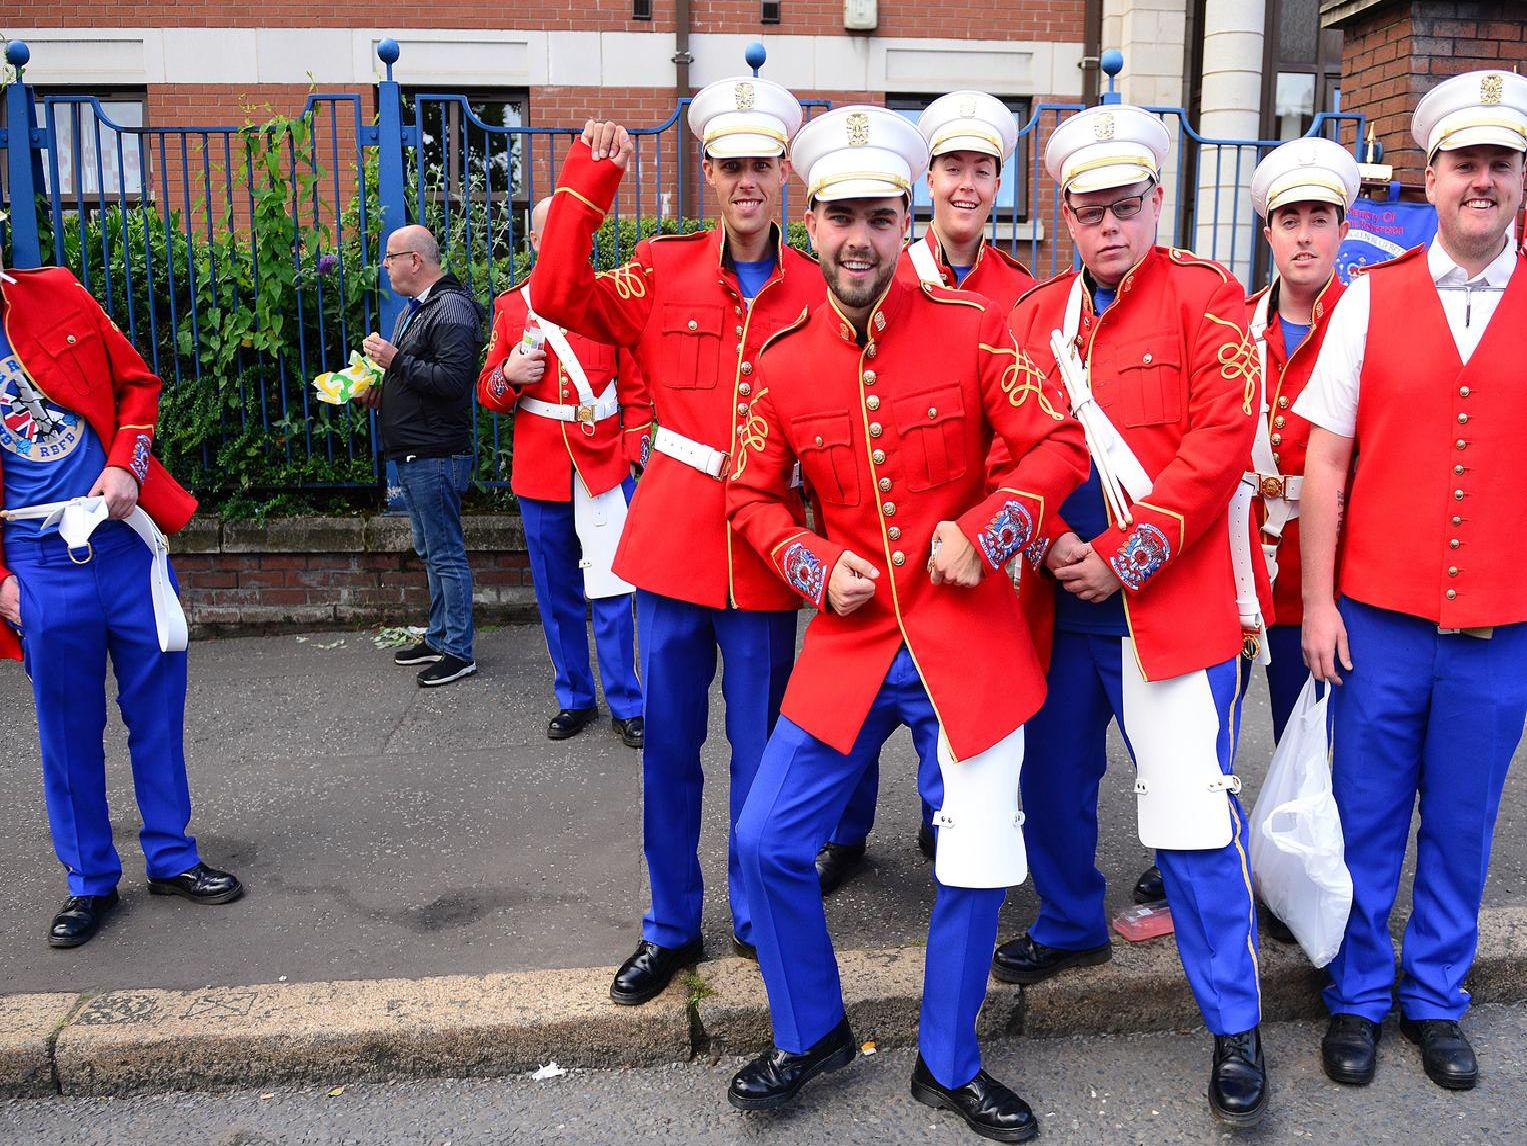 One of many photographs captured on the streets of Belfast during the 2019 Twelfth celebrations in Belfast.